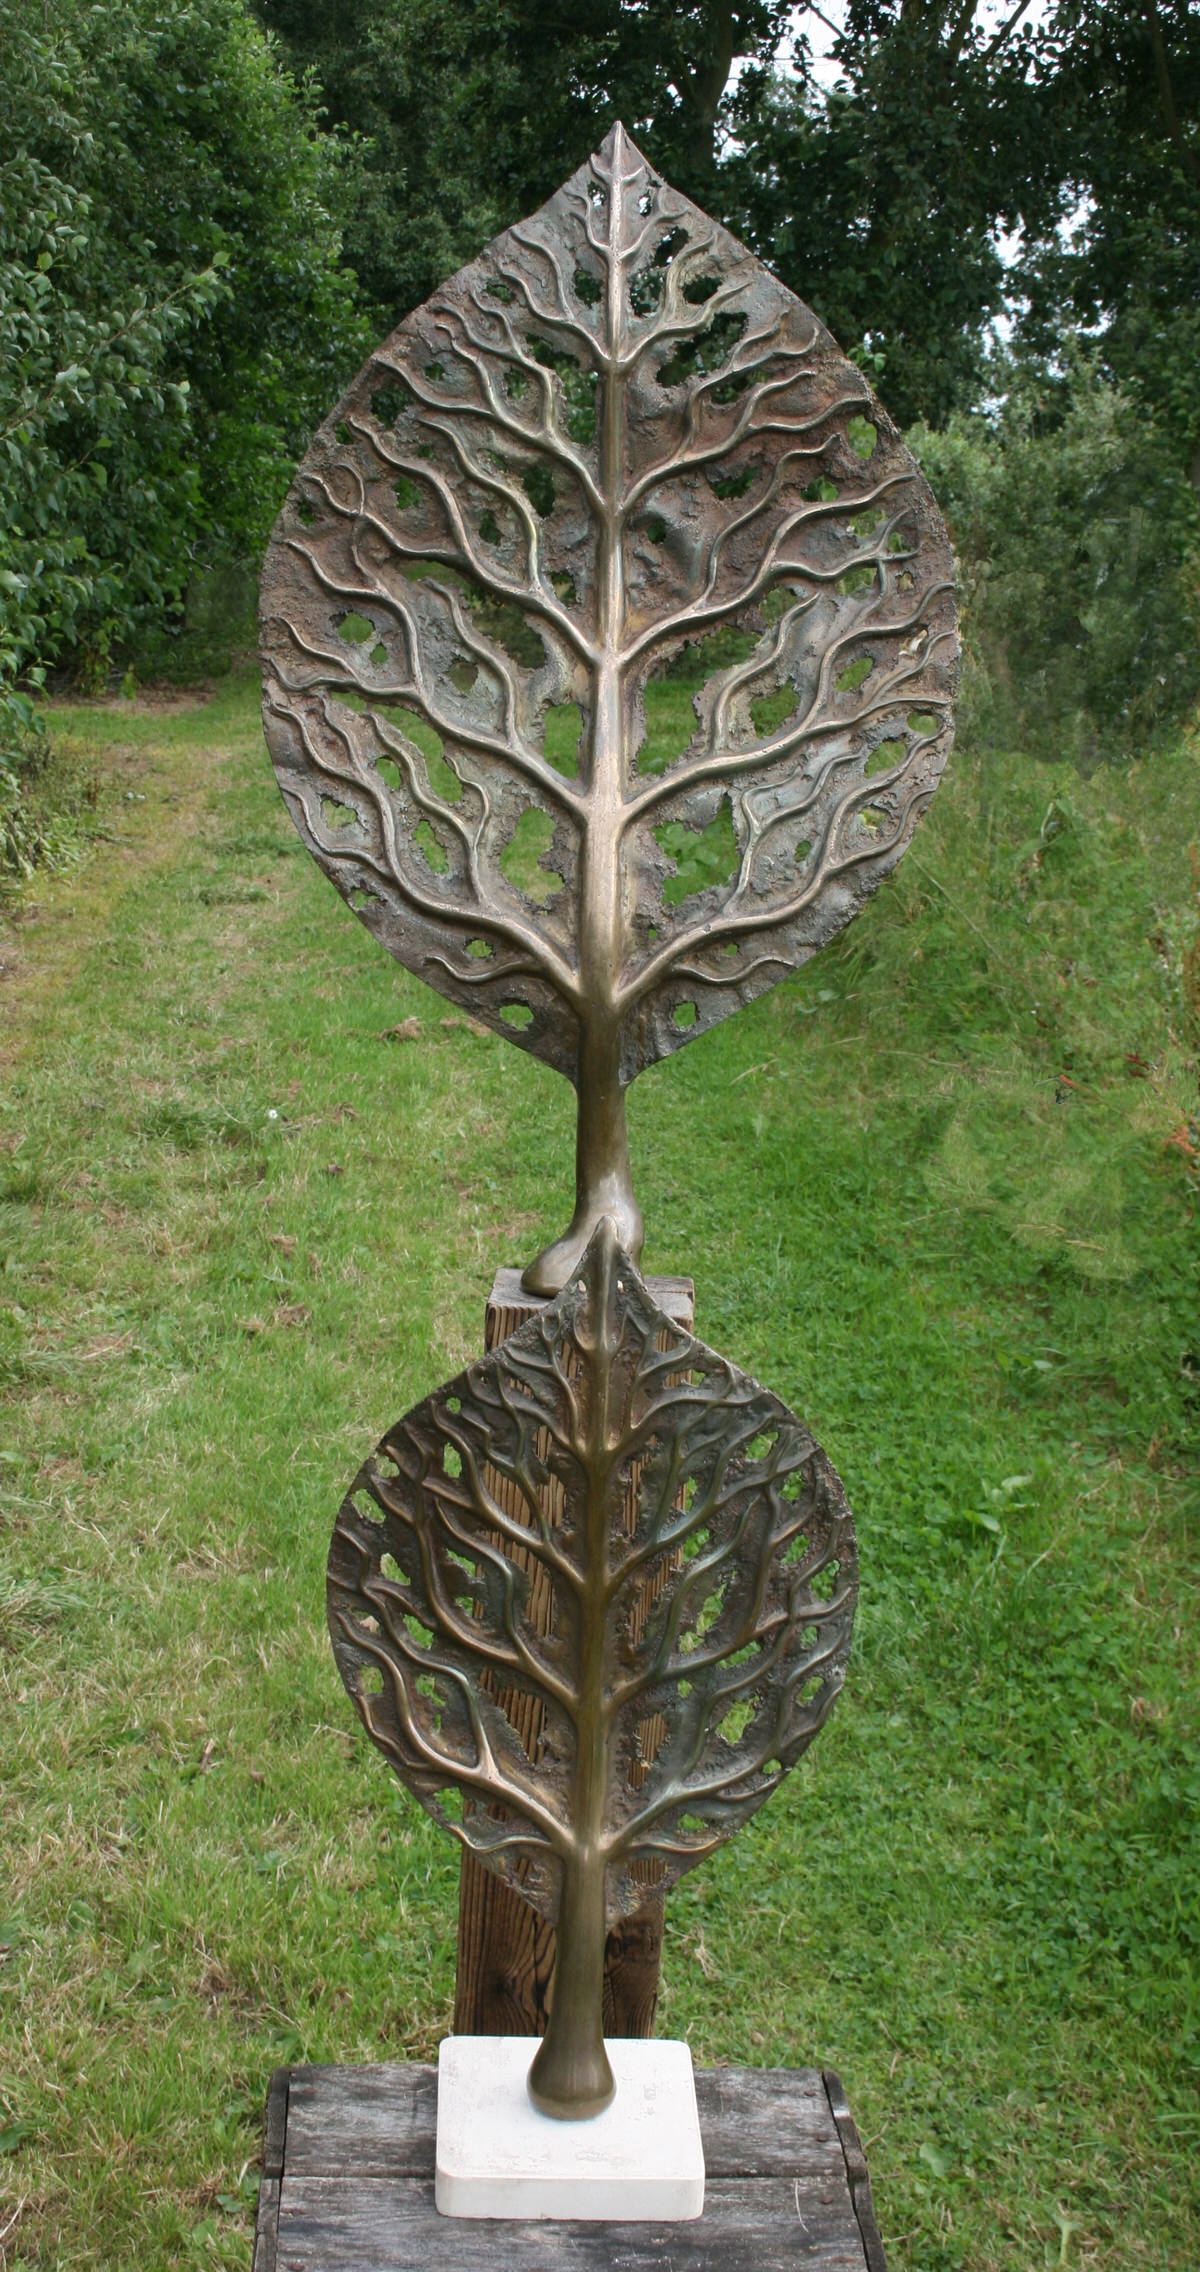 Life Leaf Small and medium bronze sculpture garden sculpture office design landscape  design by Mark Reed